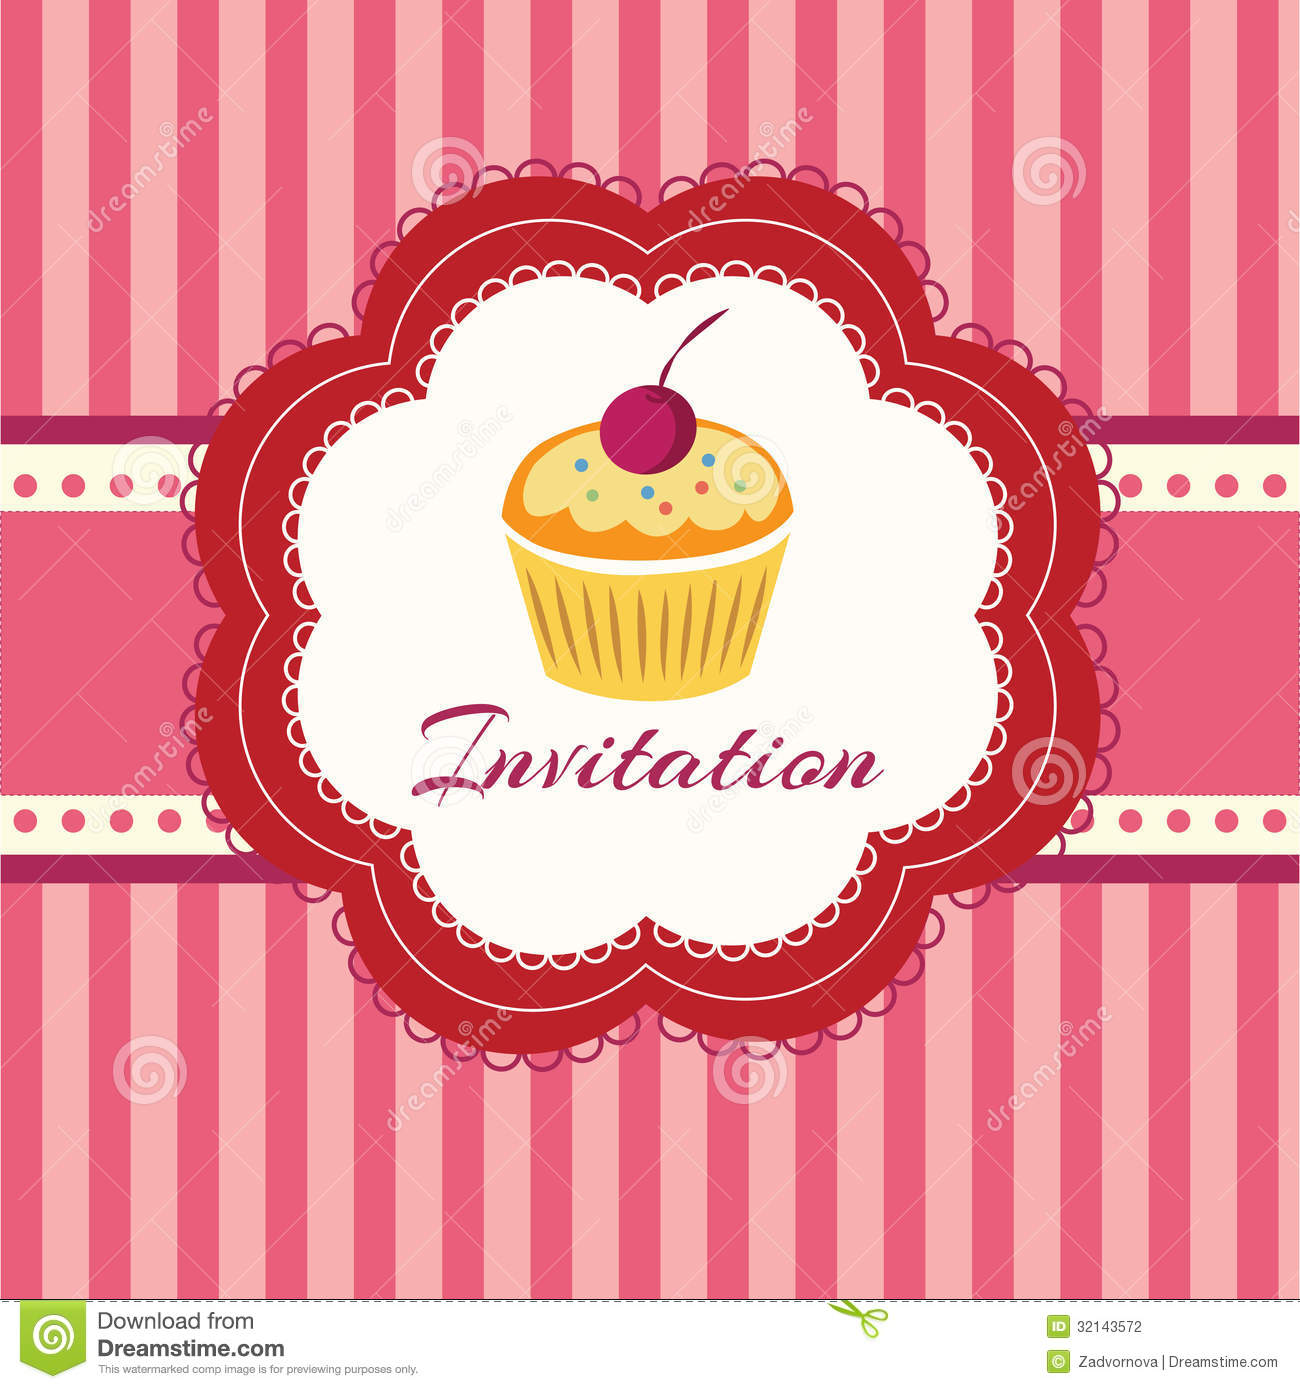 Cupcake Design Vector : Cupcake Background. Invitation Stock Photography - Image ...